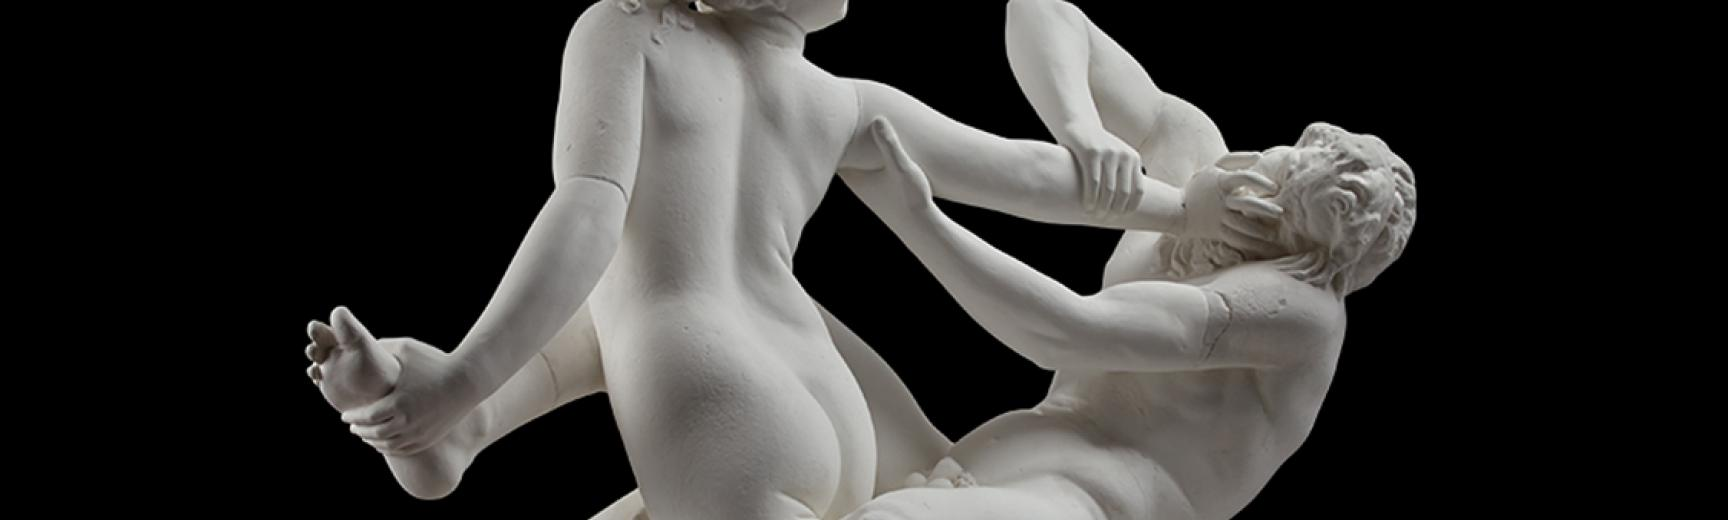 Statue of Satyr and Hermaphrodite